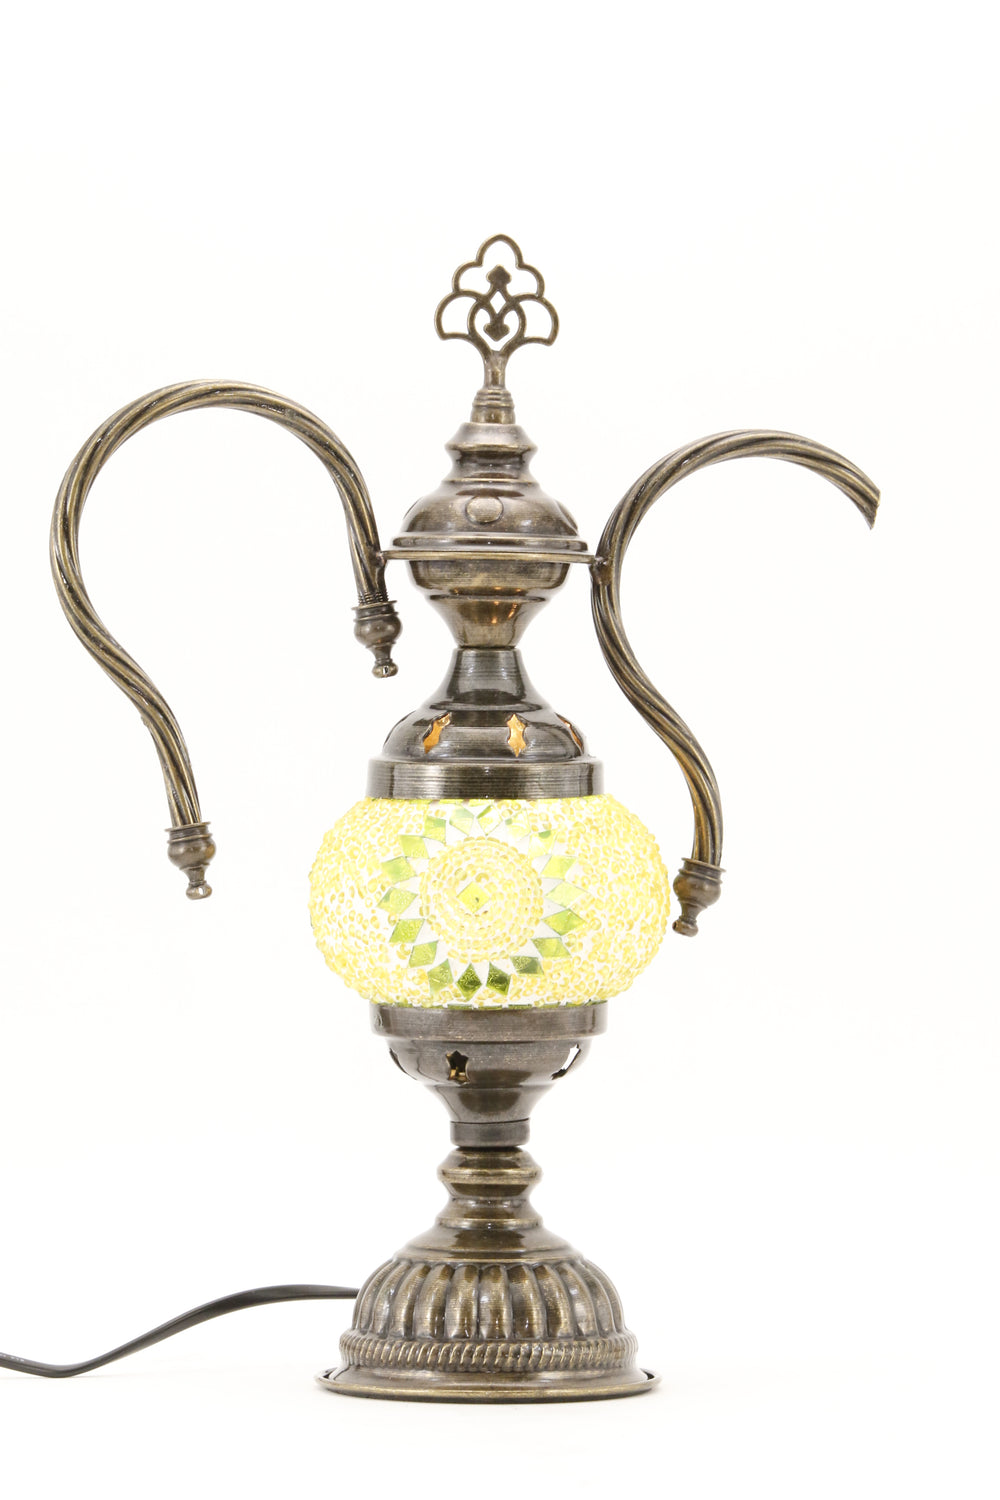 TURKISH MOSAIC GENIE BOTTLE TABLE LAMP LIME GREEN -TURNED ON